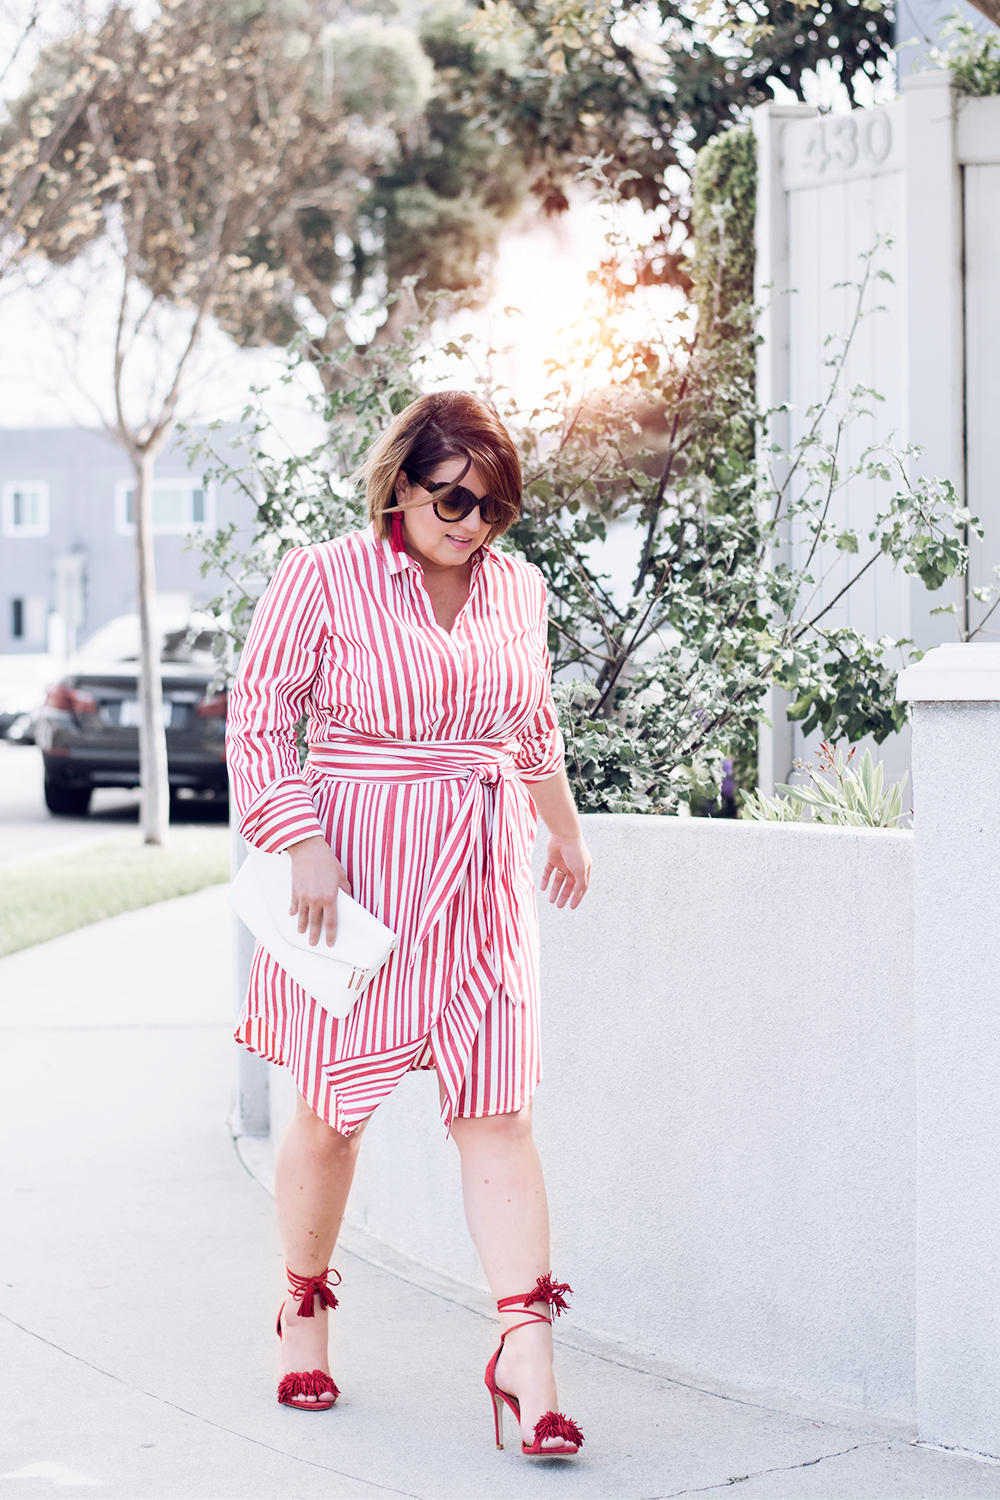 Red Stripes for Summer Striped Red Dress Who What Wear Street Style Looks to Copy in 2018 Barefoot in LA Fashion Blog Style Ideas Outfits0135